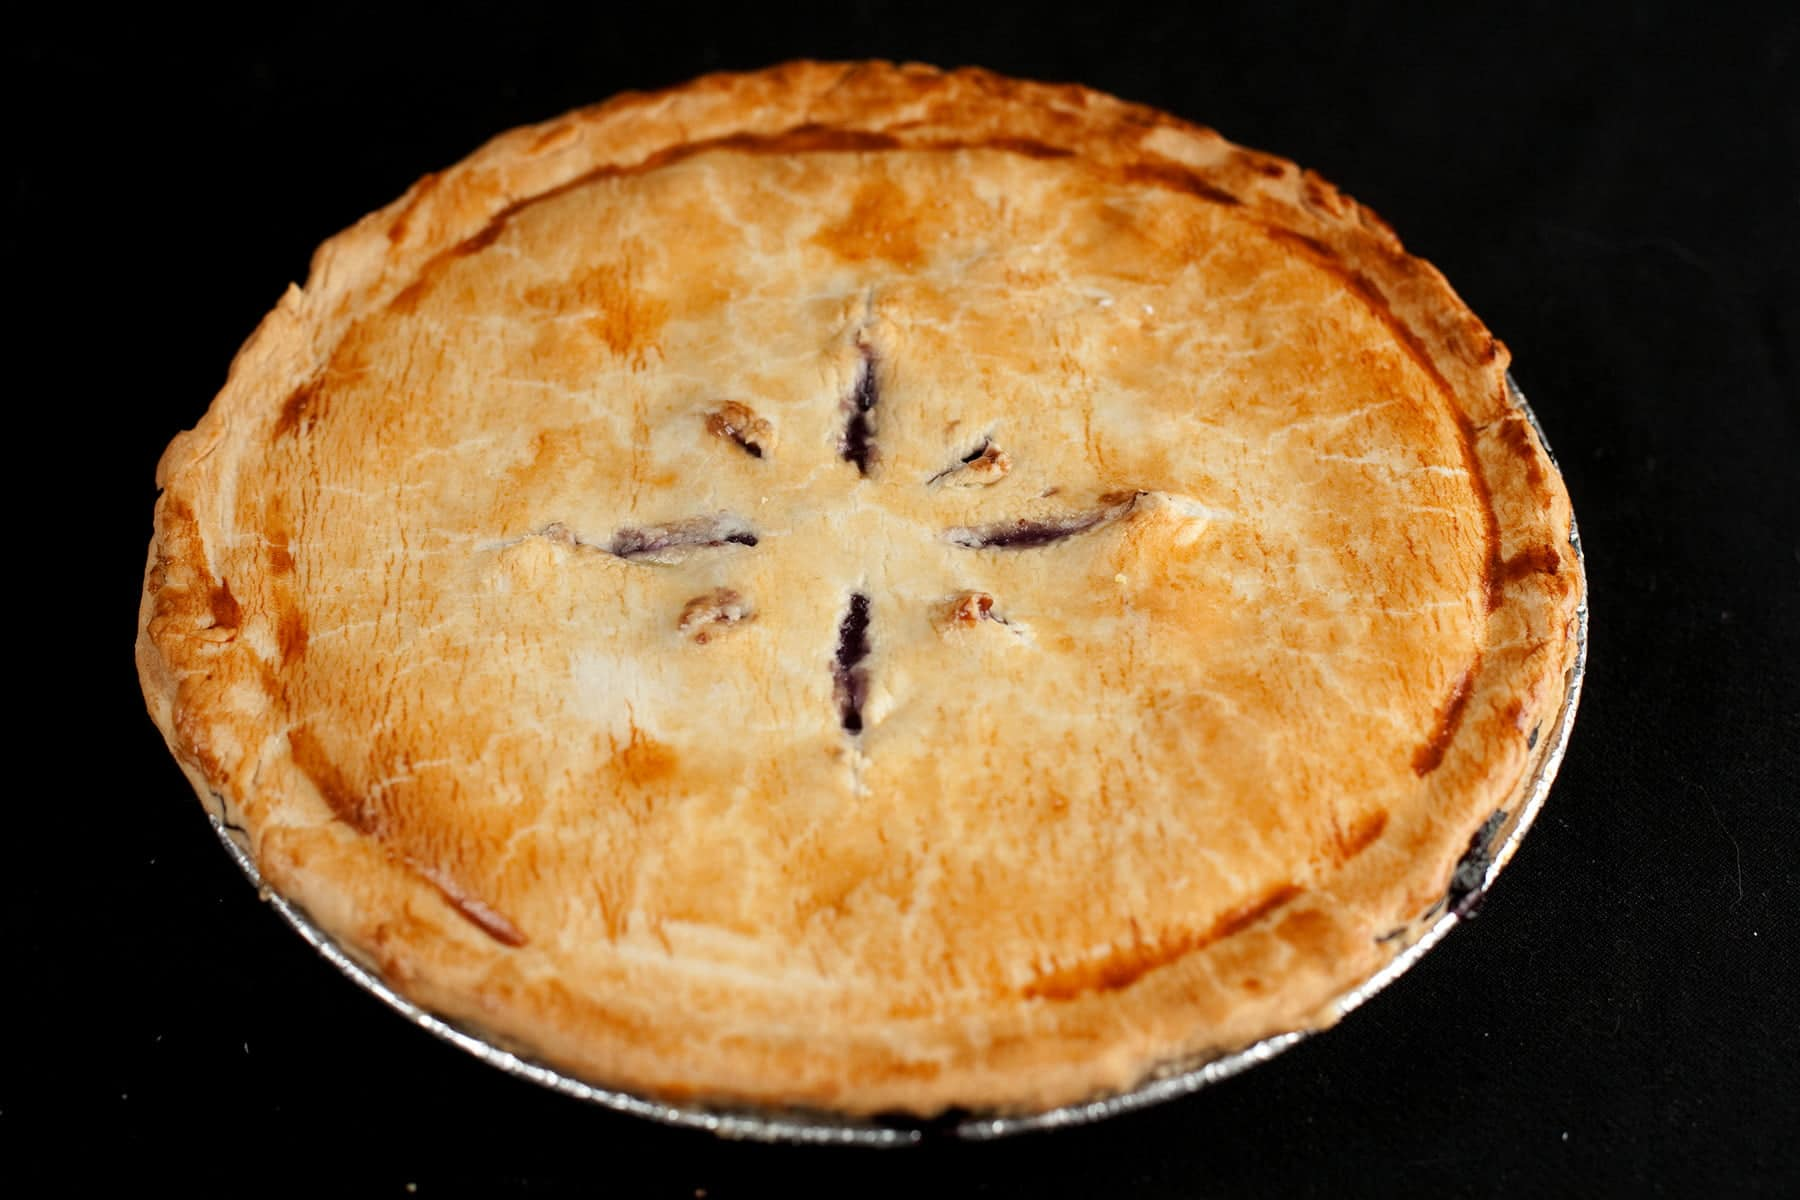 A whole 2-crust pie, against a black background. Slits cut into the top crust reveal it to be a blueberry pie.